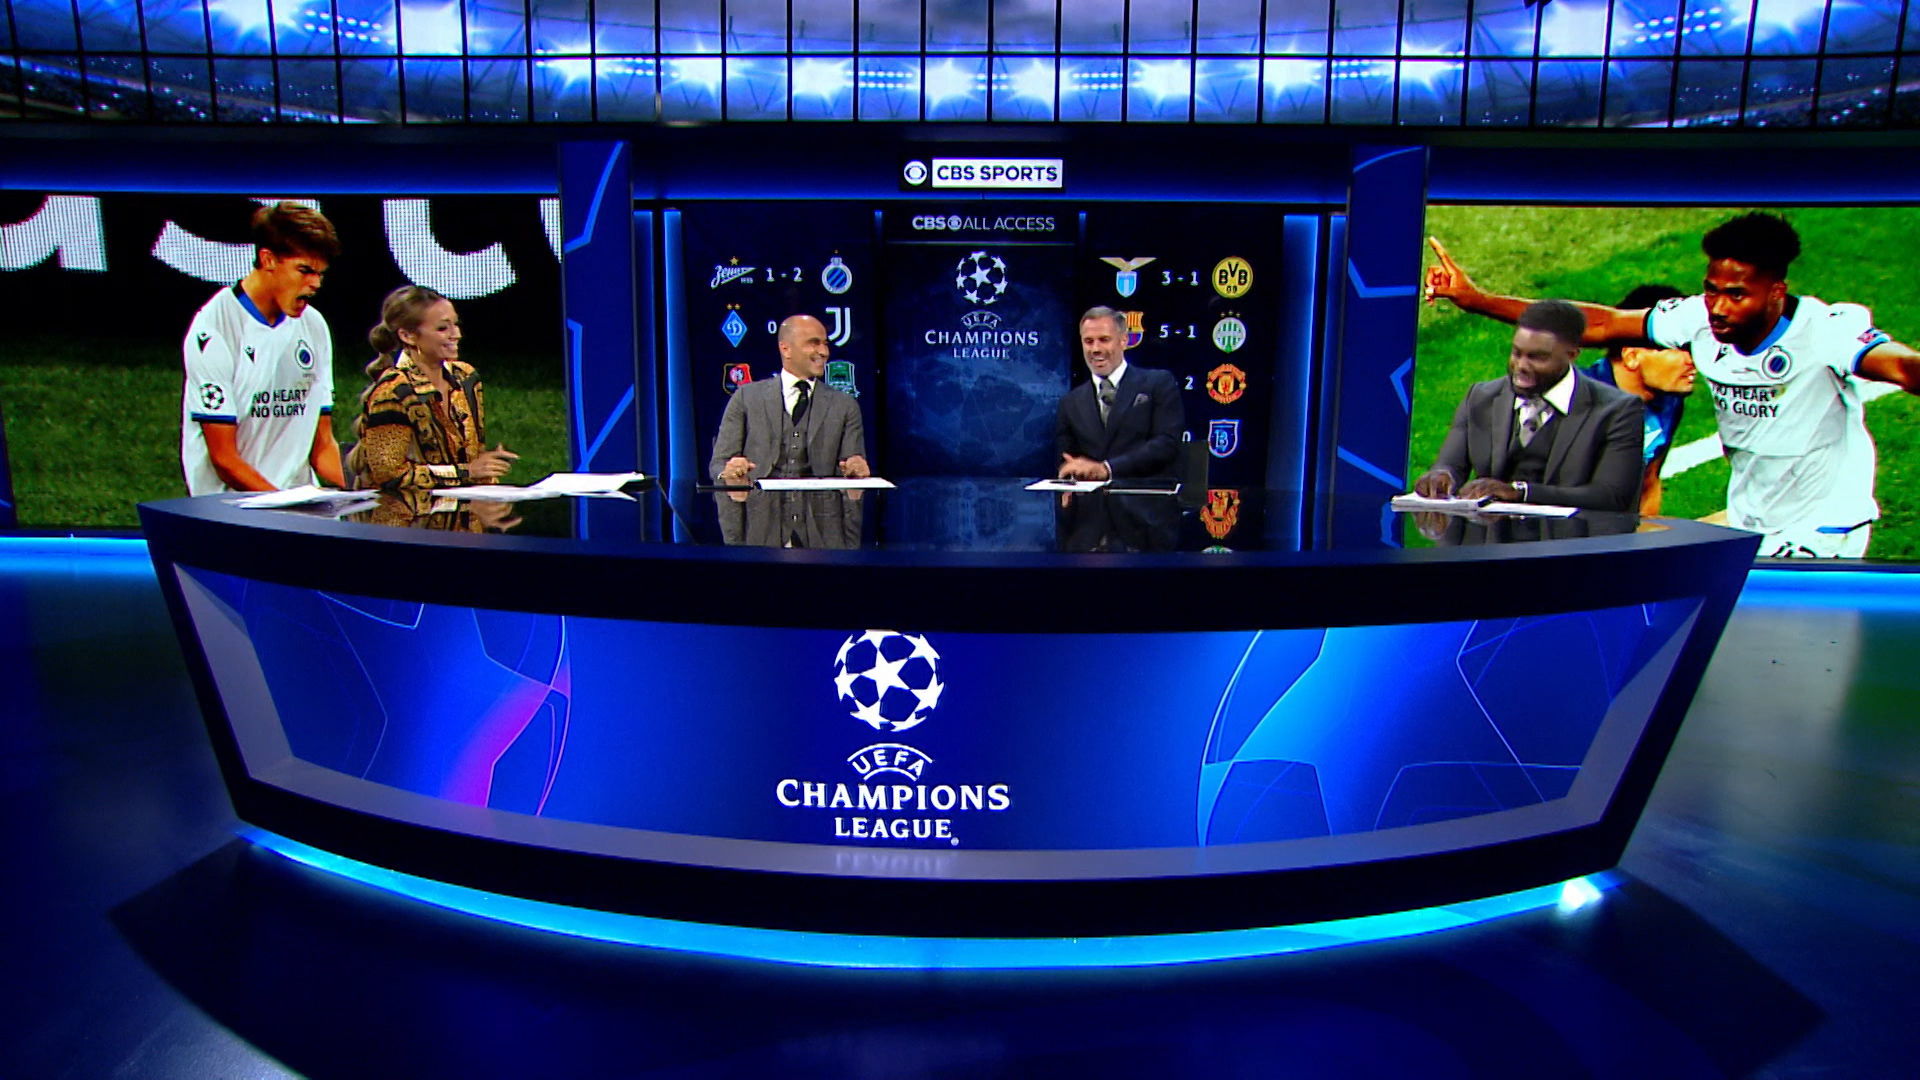 watch uefa champions league season 2021 champions league today post show 10 20 2020 full show on cbs all access watch uefa champions league season 2021 champions league today post show 10 20 2020 full show on cbs all access